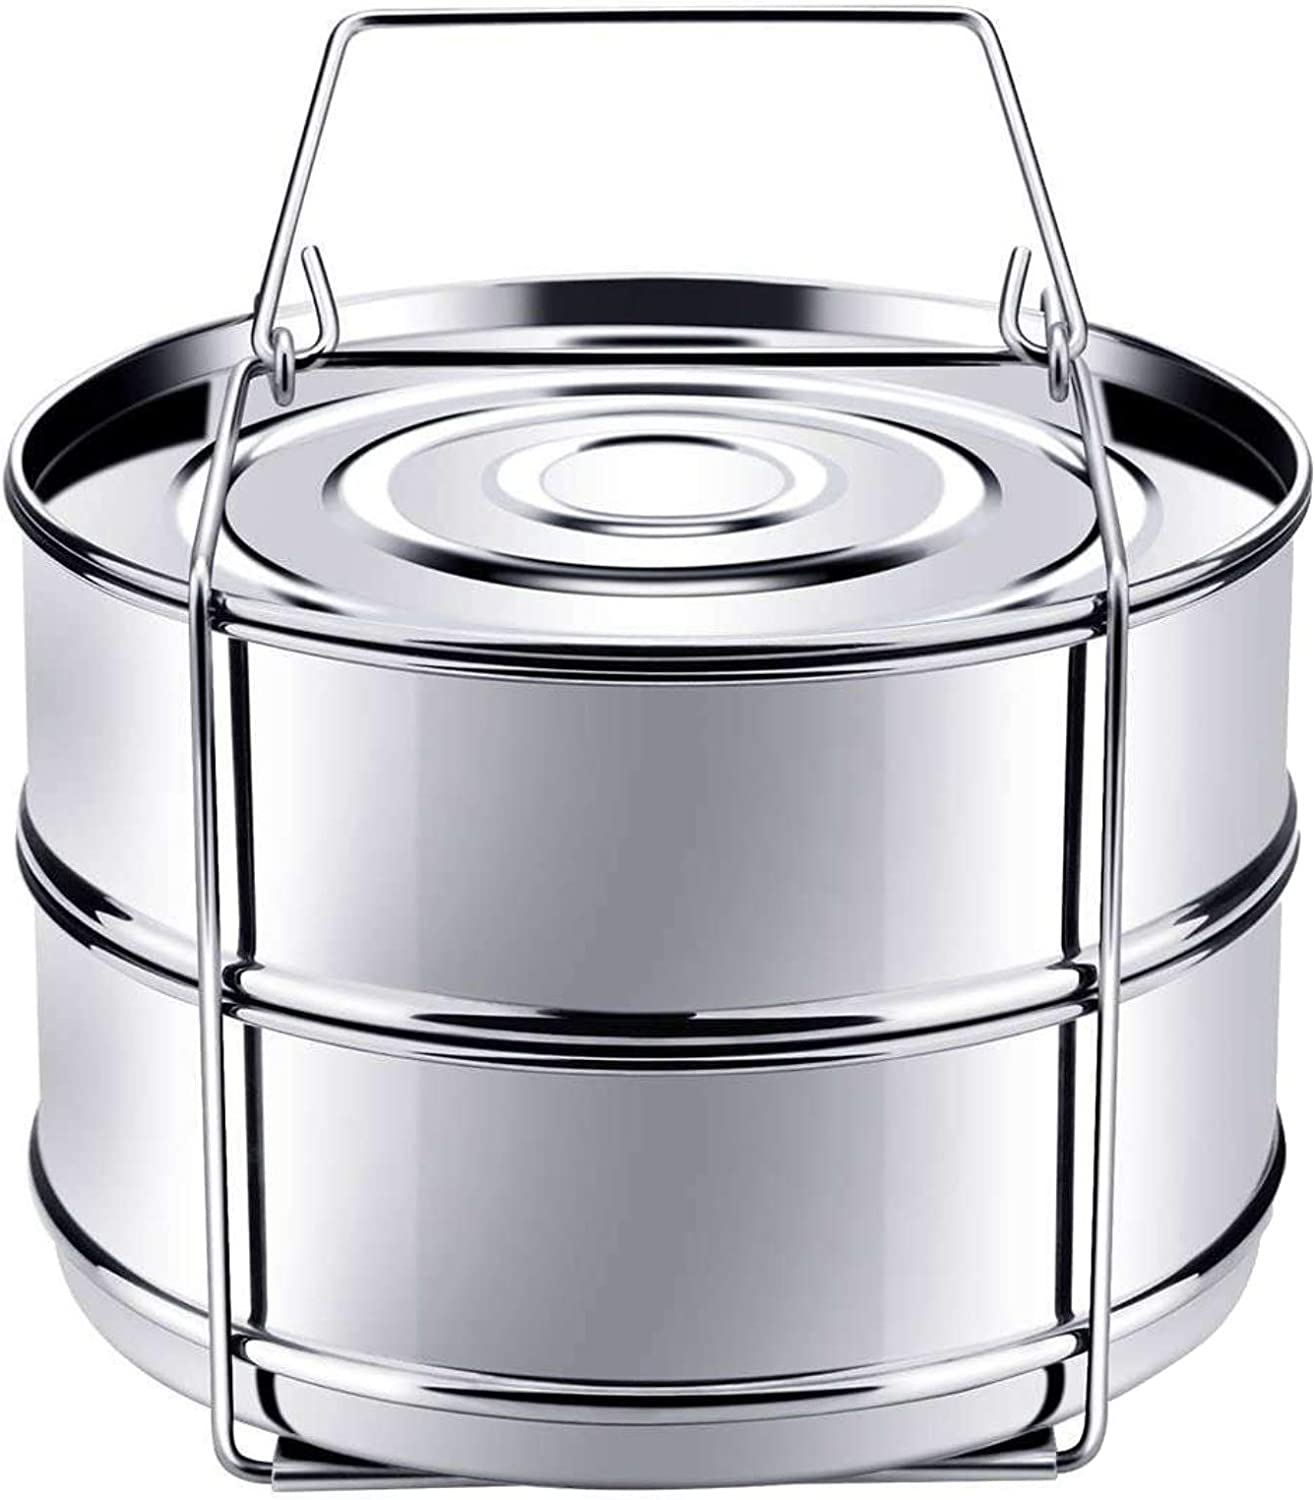 Stackable Stainless Steel Pressure Cooker Steamer Cooking Insert Pans with Sling, Steamer Insert Pans For Instant Pot Stackable Insert Pans, Stackable Steamer Insert Pans Interchangeable Lids